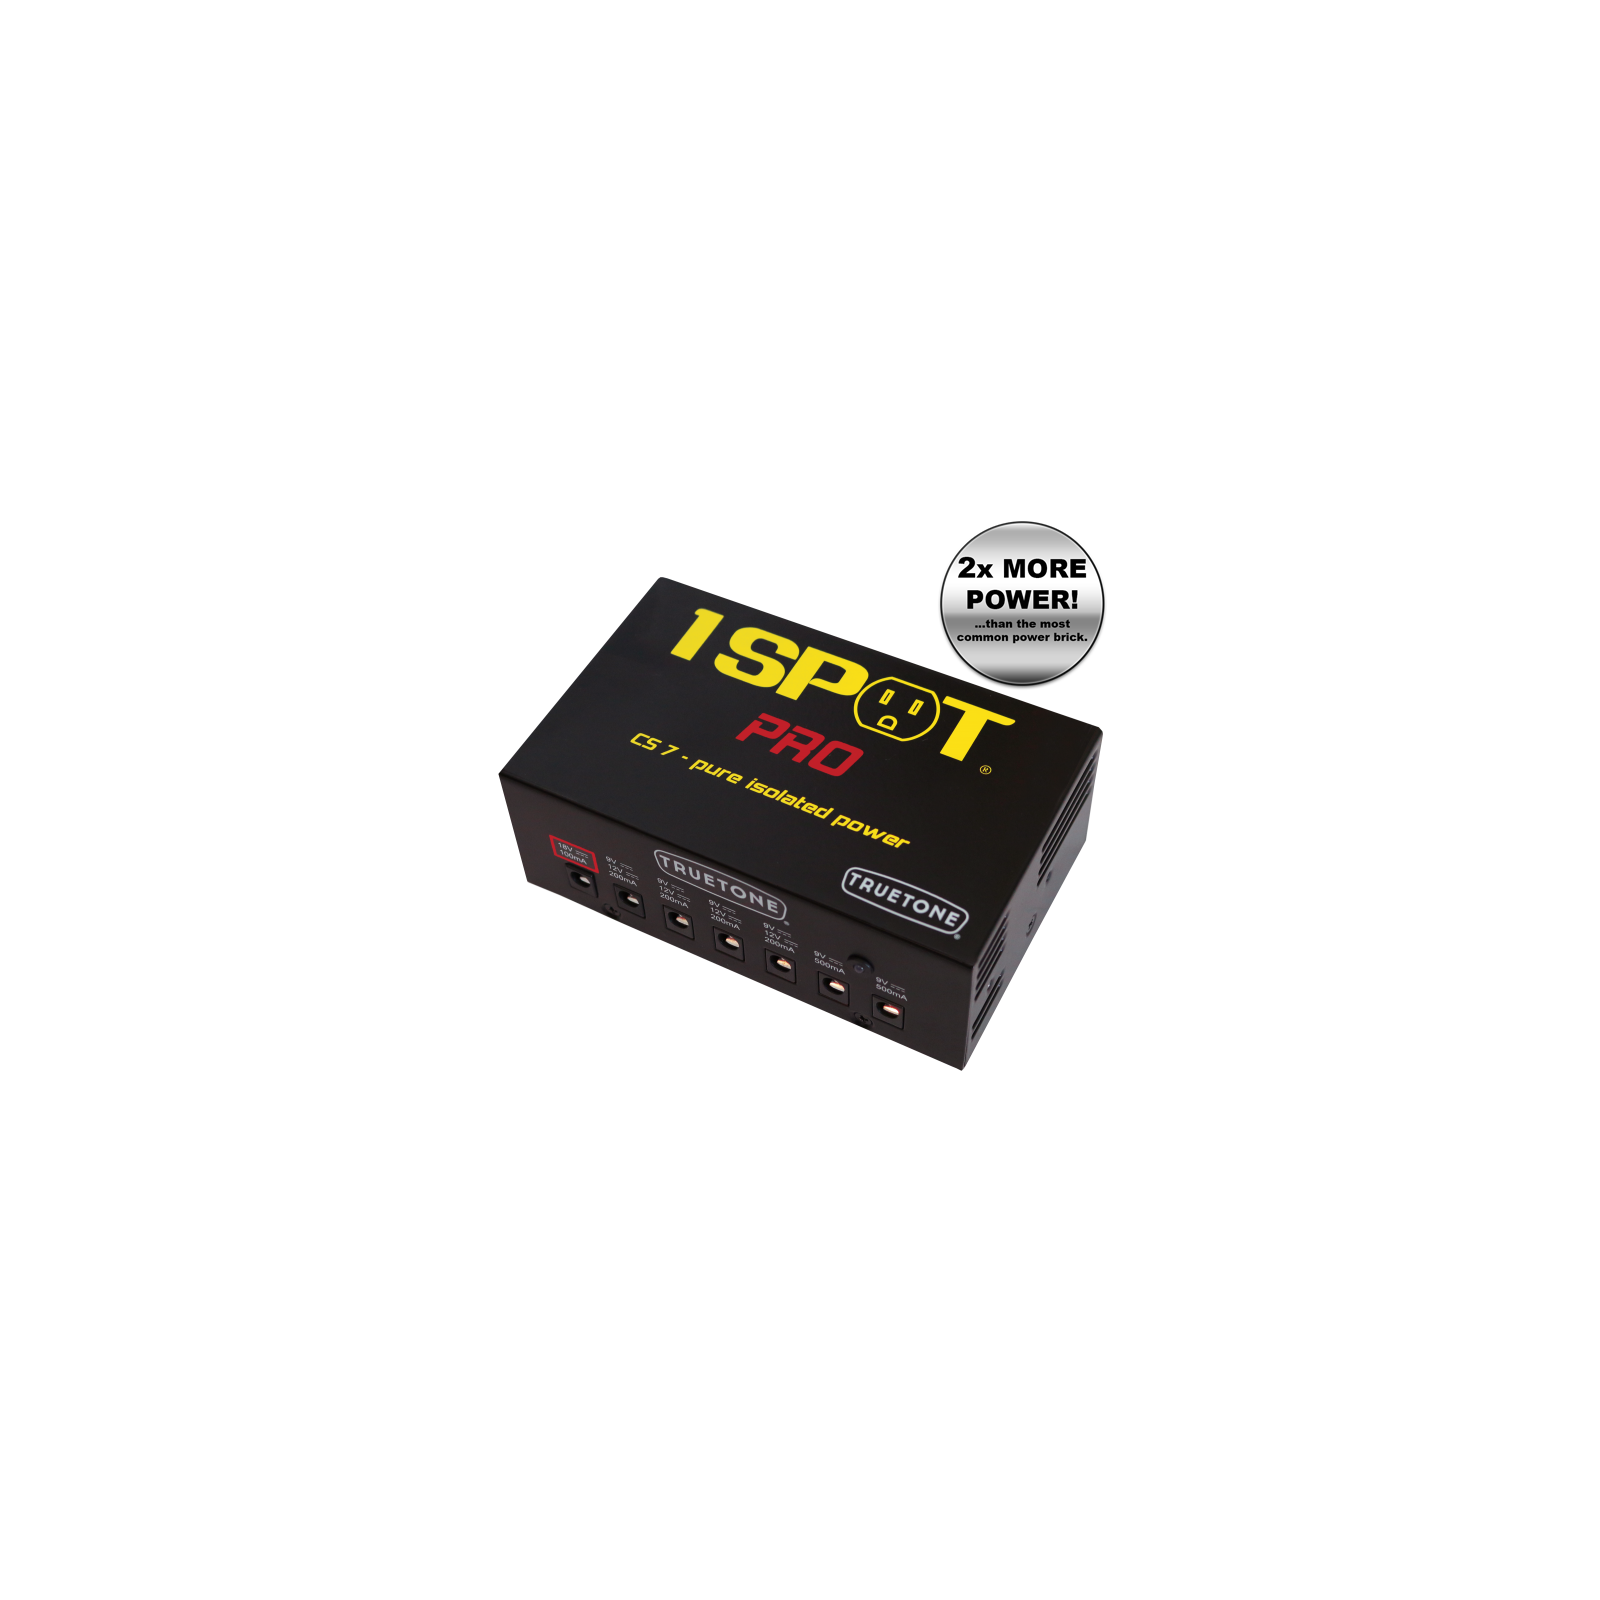 TRUE TONE 1 SPOT PRO CS 7 MULTI VOLTAGE POWER SUPPLY